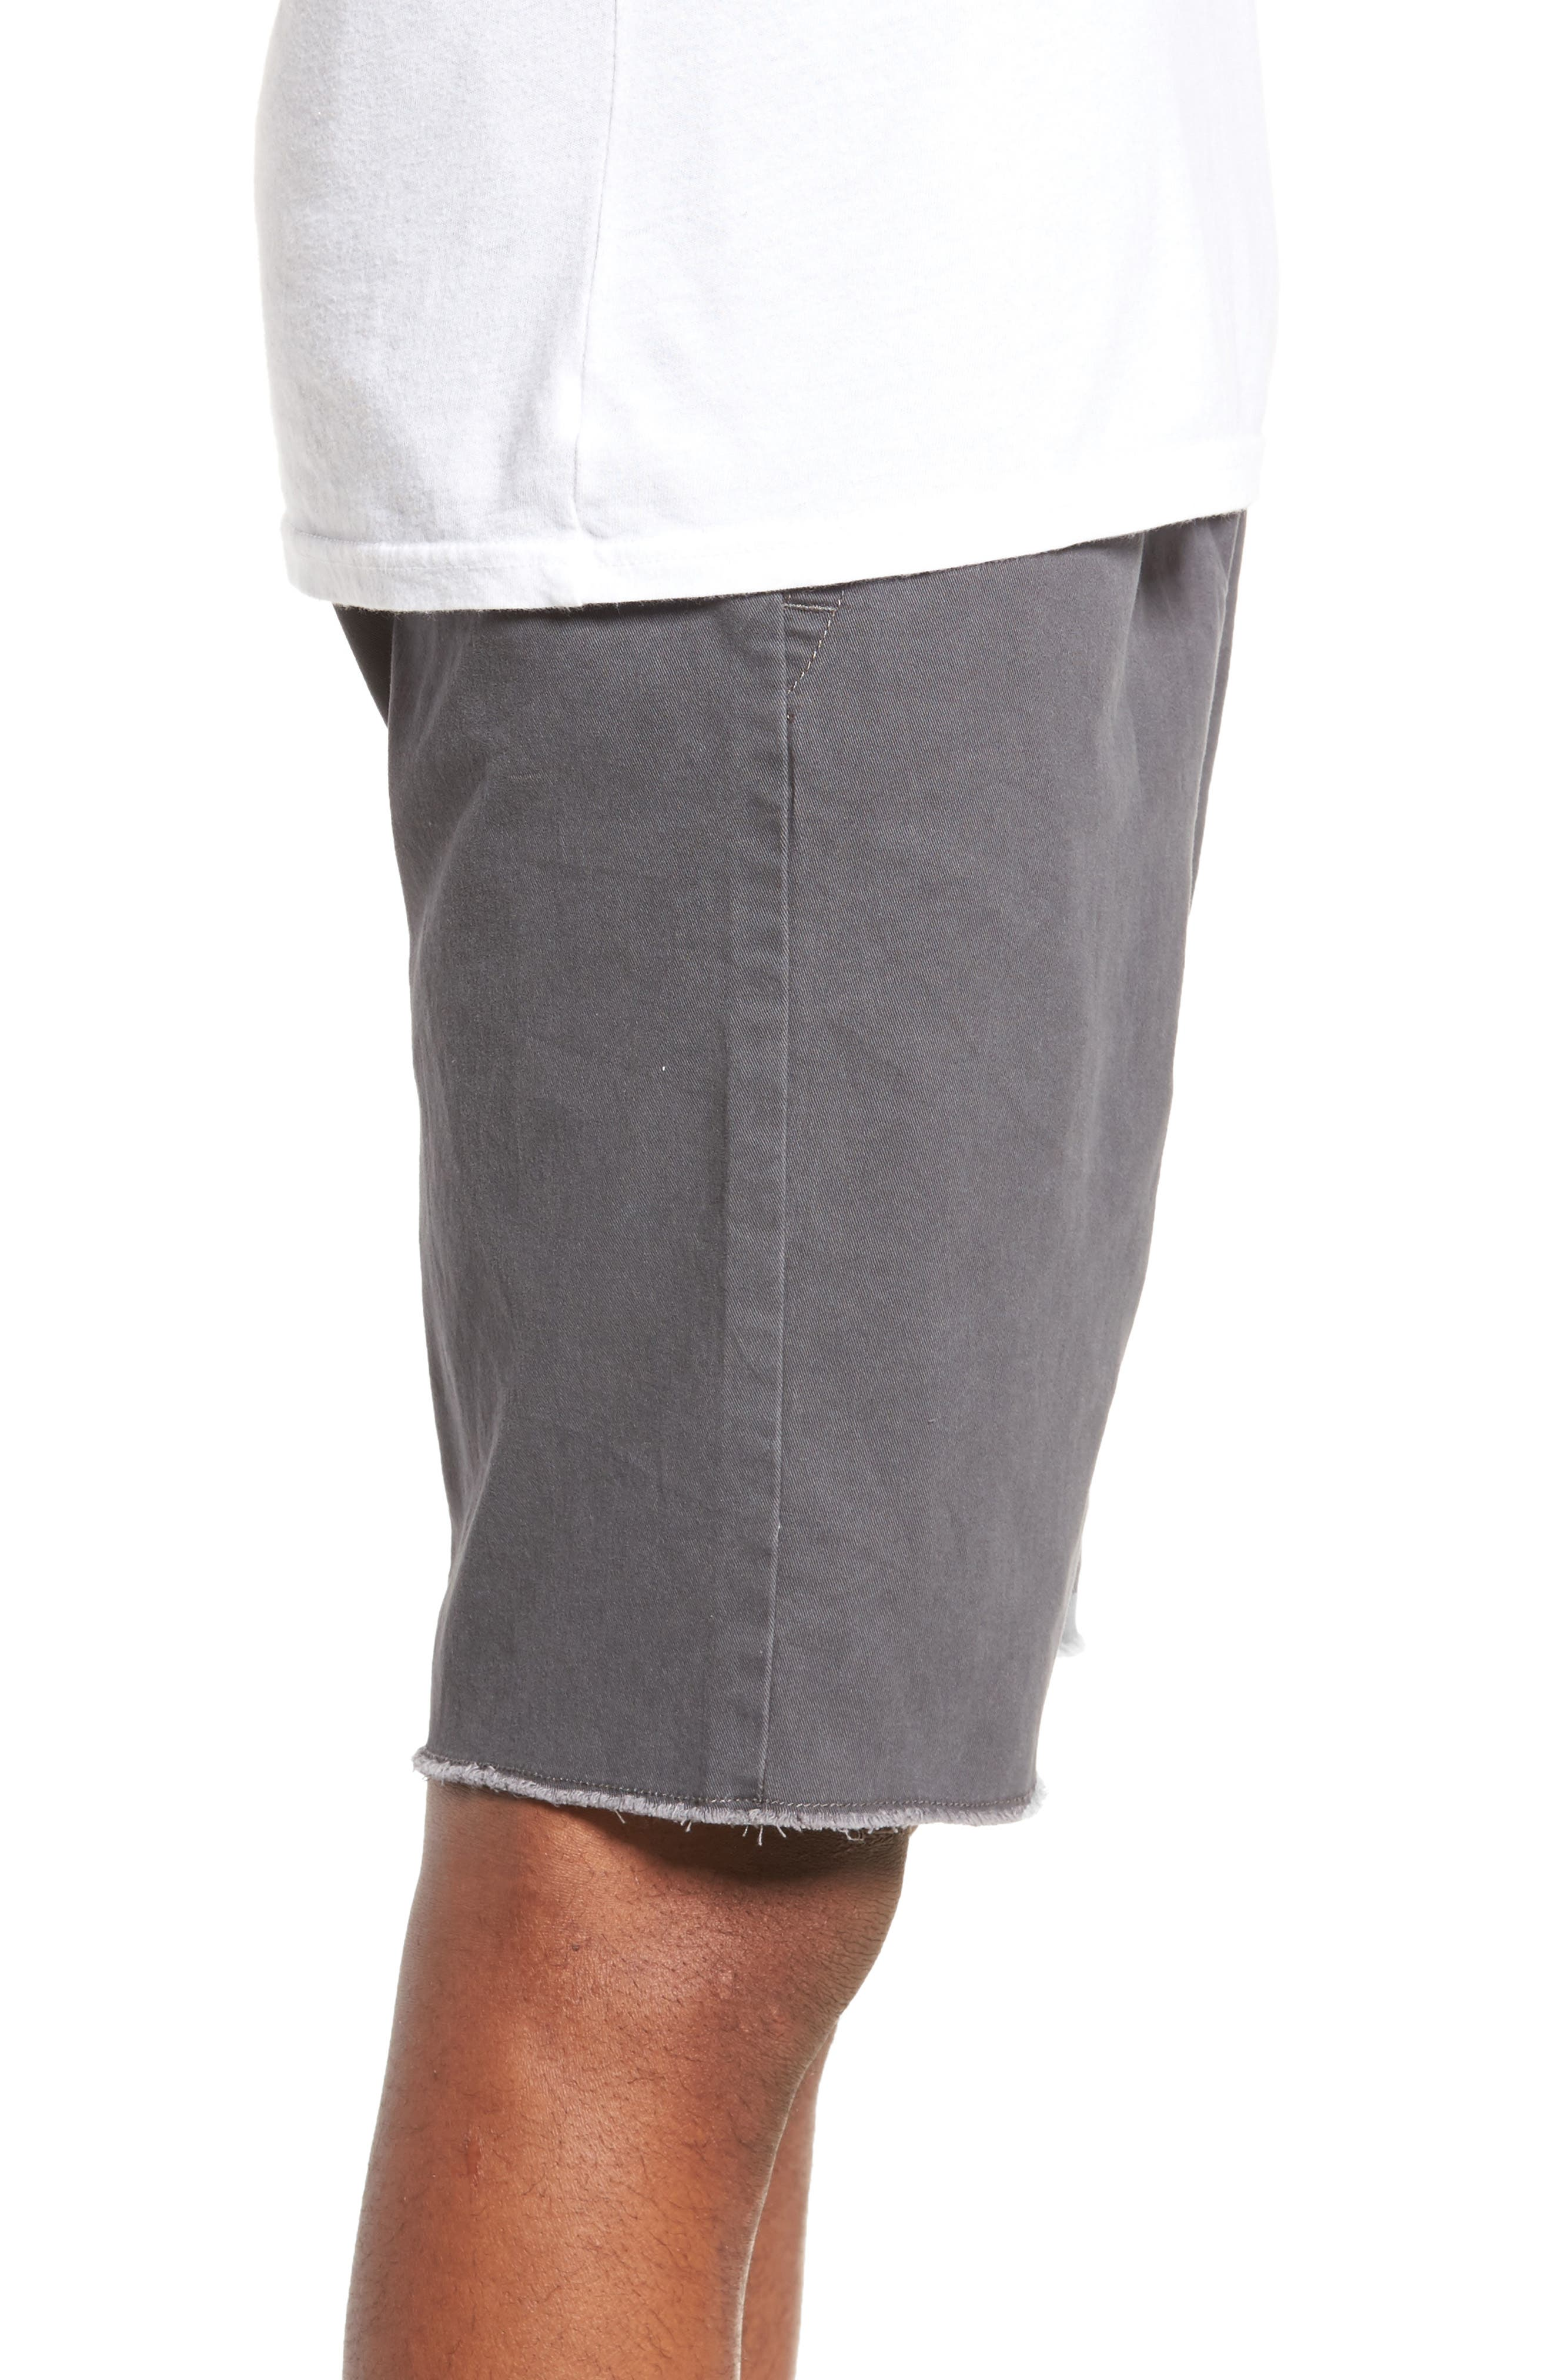 Jogger Shorts,                             Alternate thumbnail 3, color,                             022